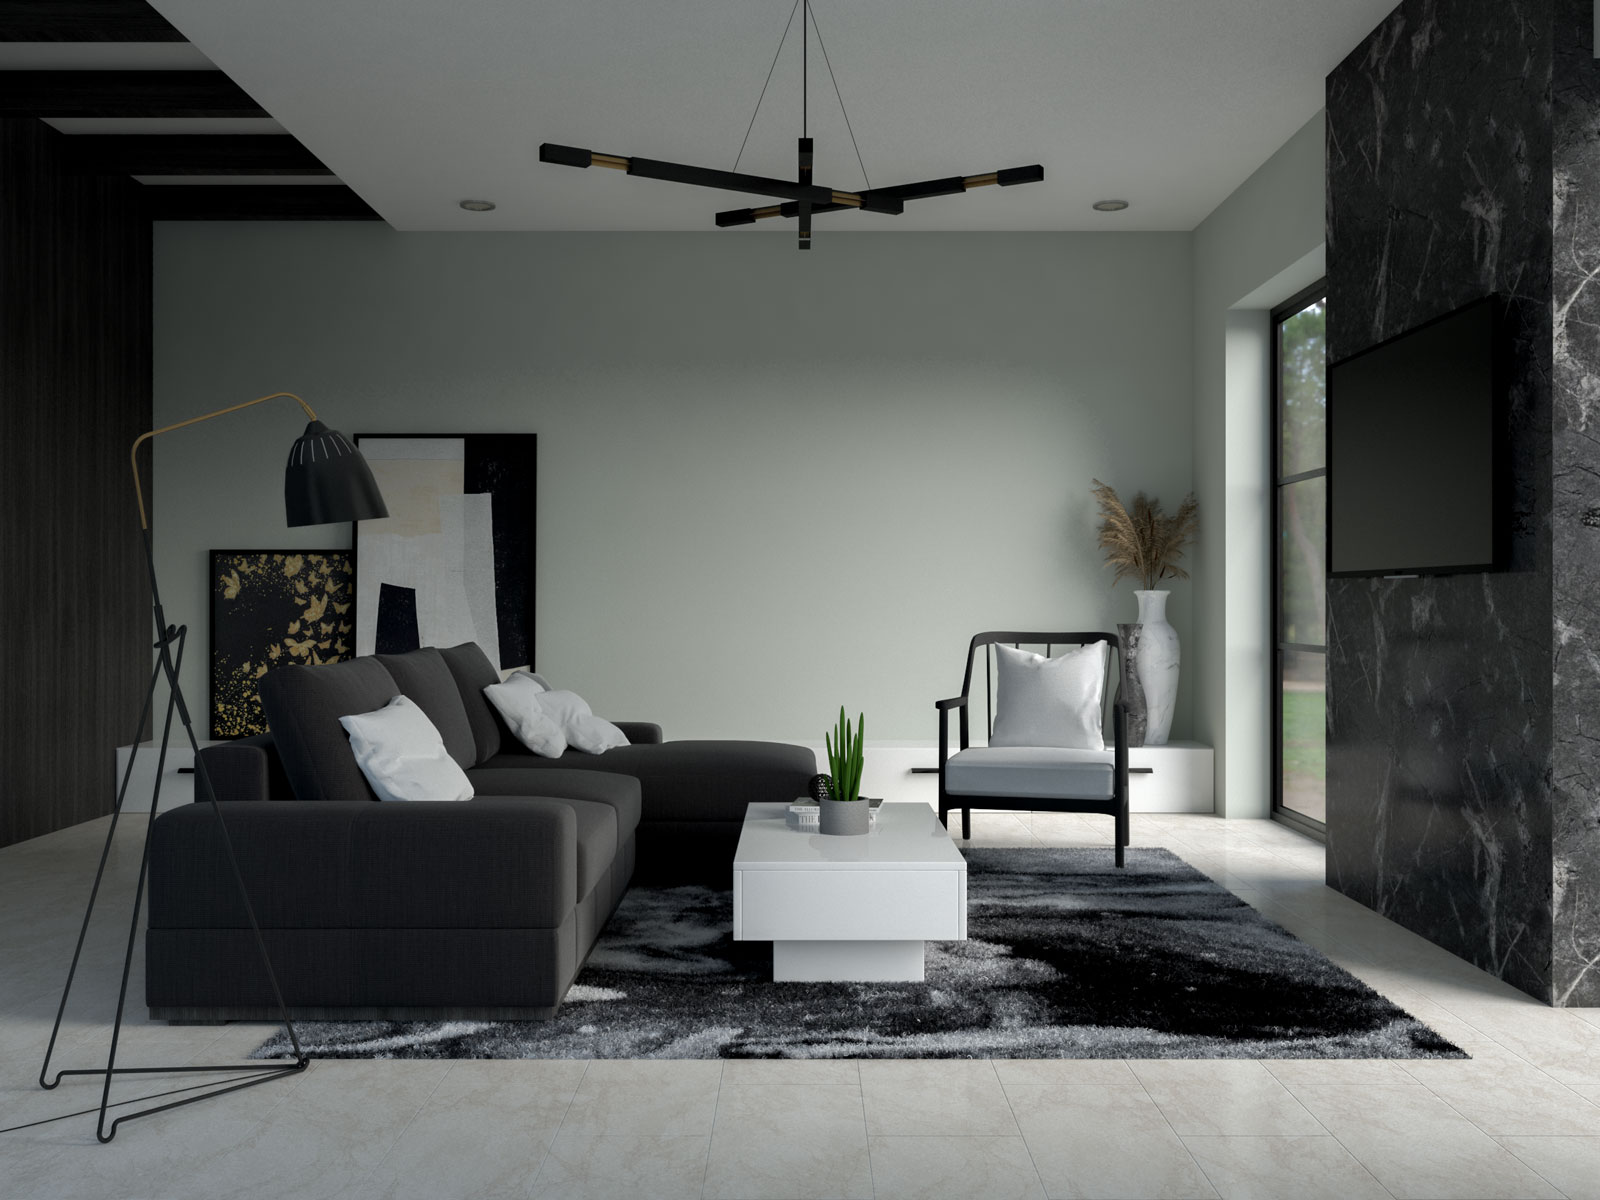 Seasalt green walls with white and black furniture